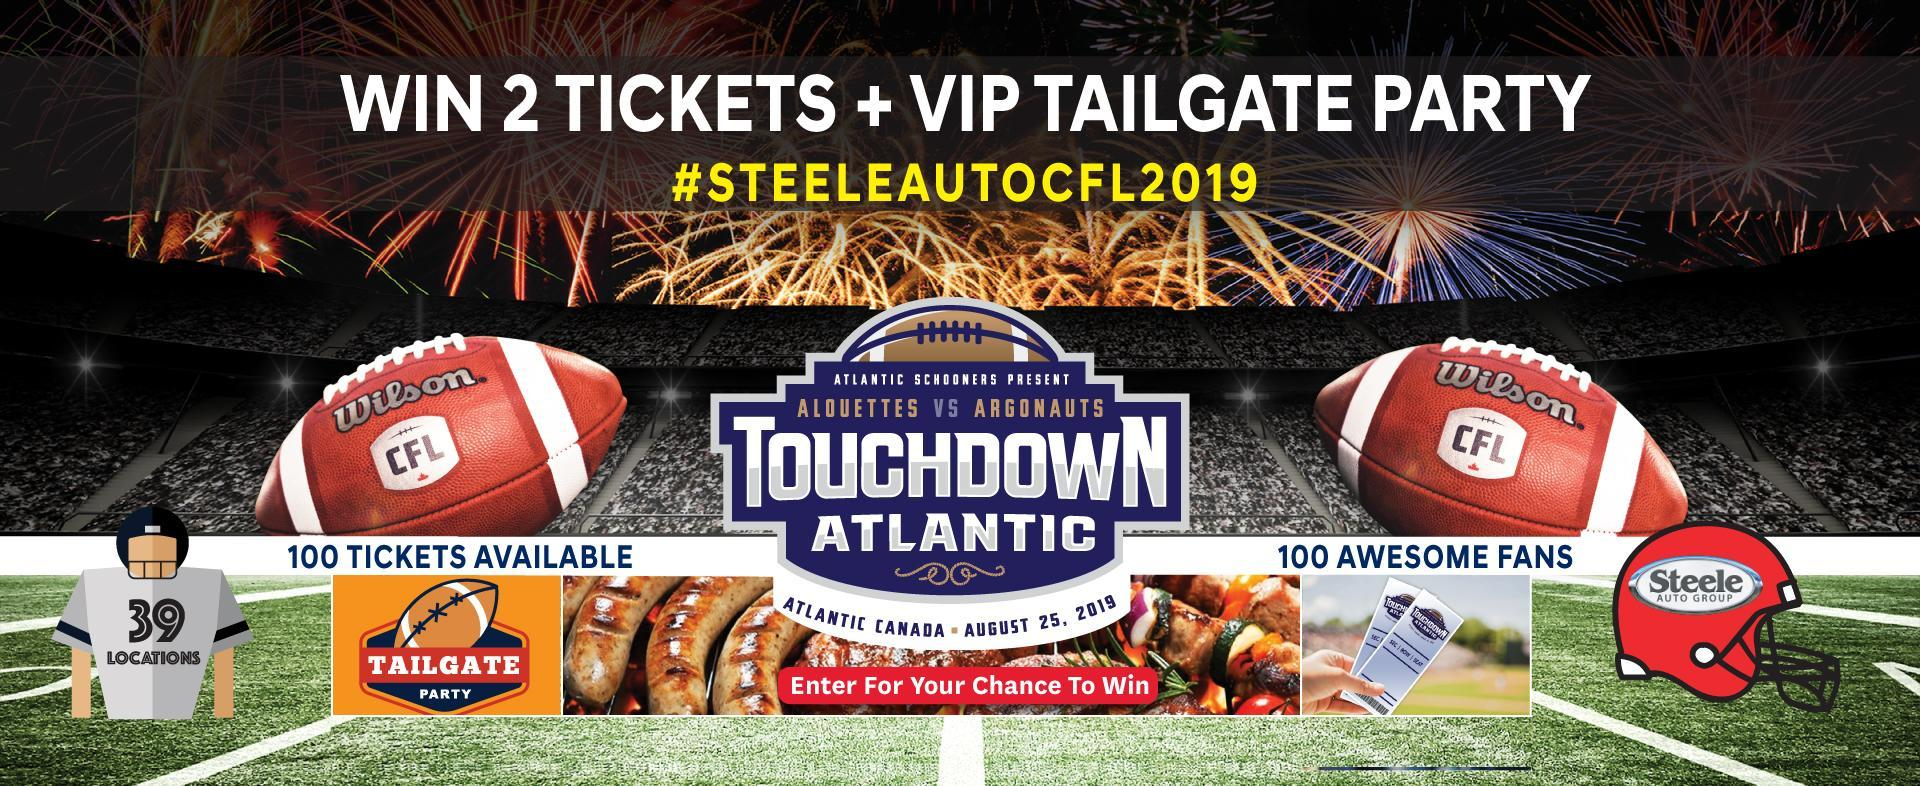 CFL Touchdown Atlantic Promo